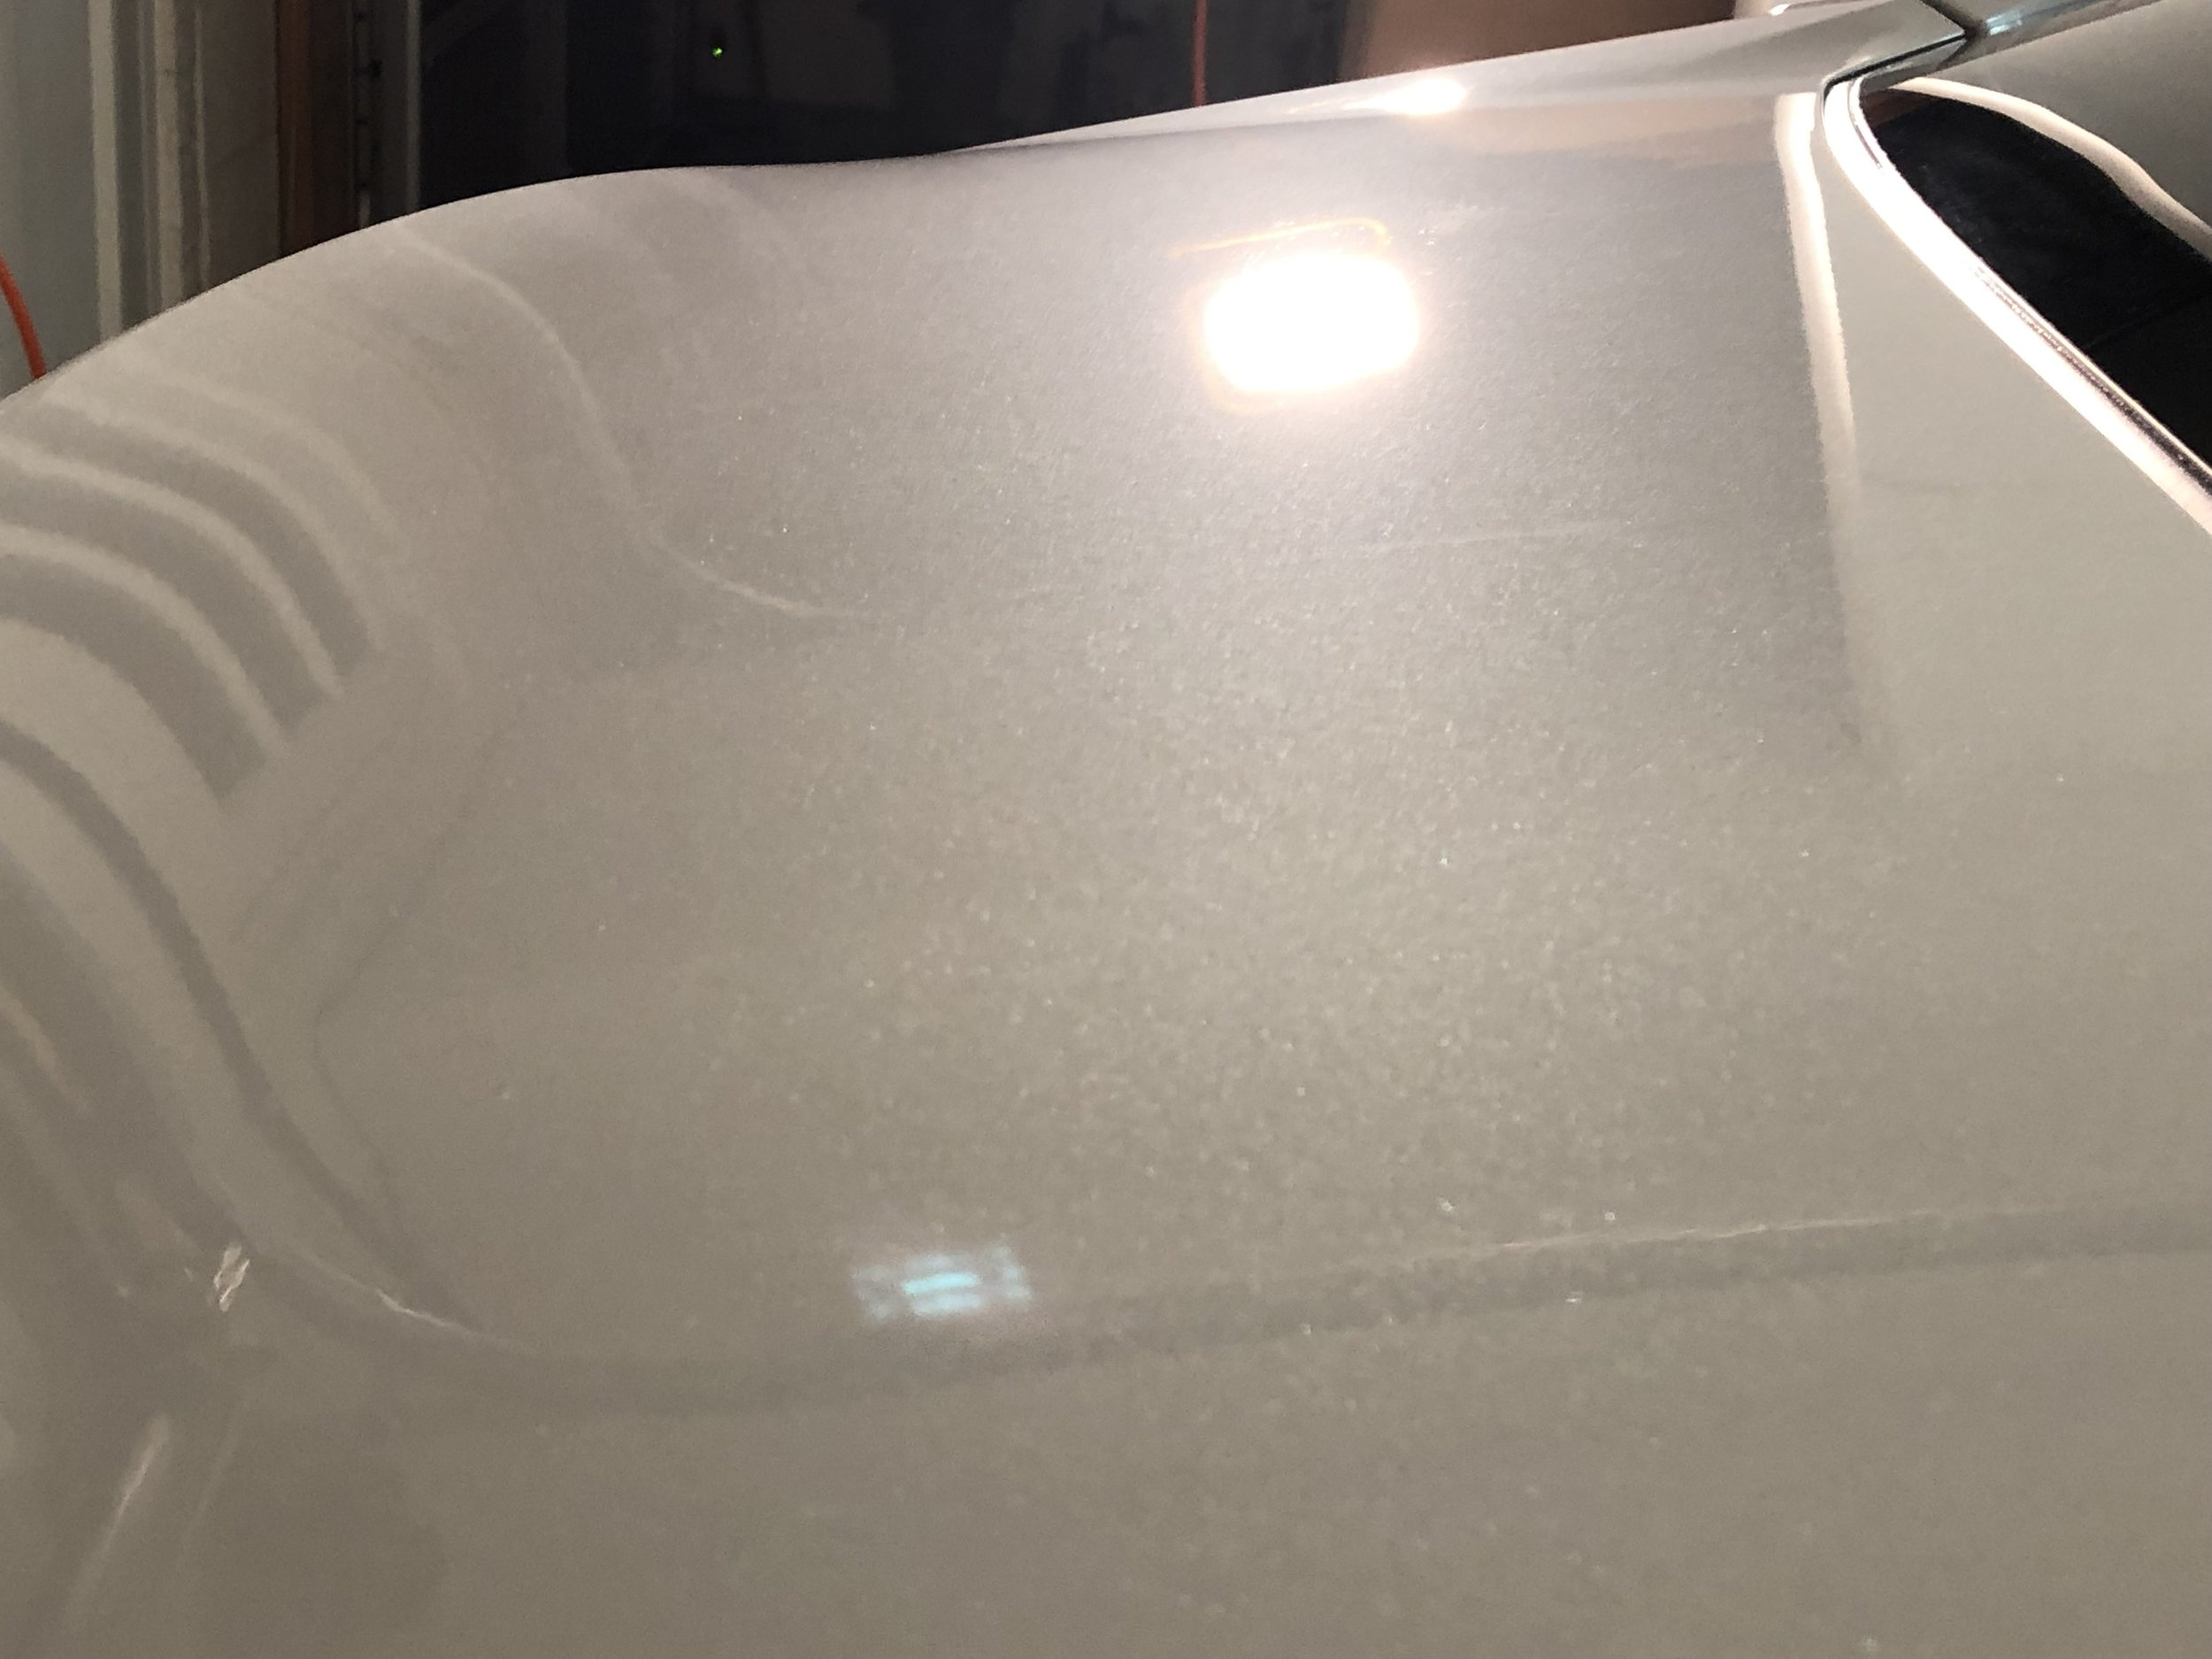 After Paint Correction